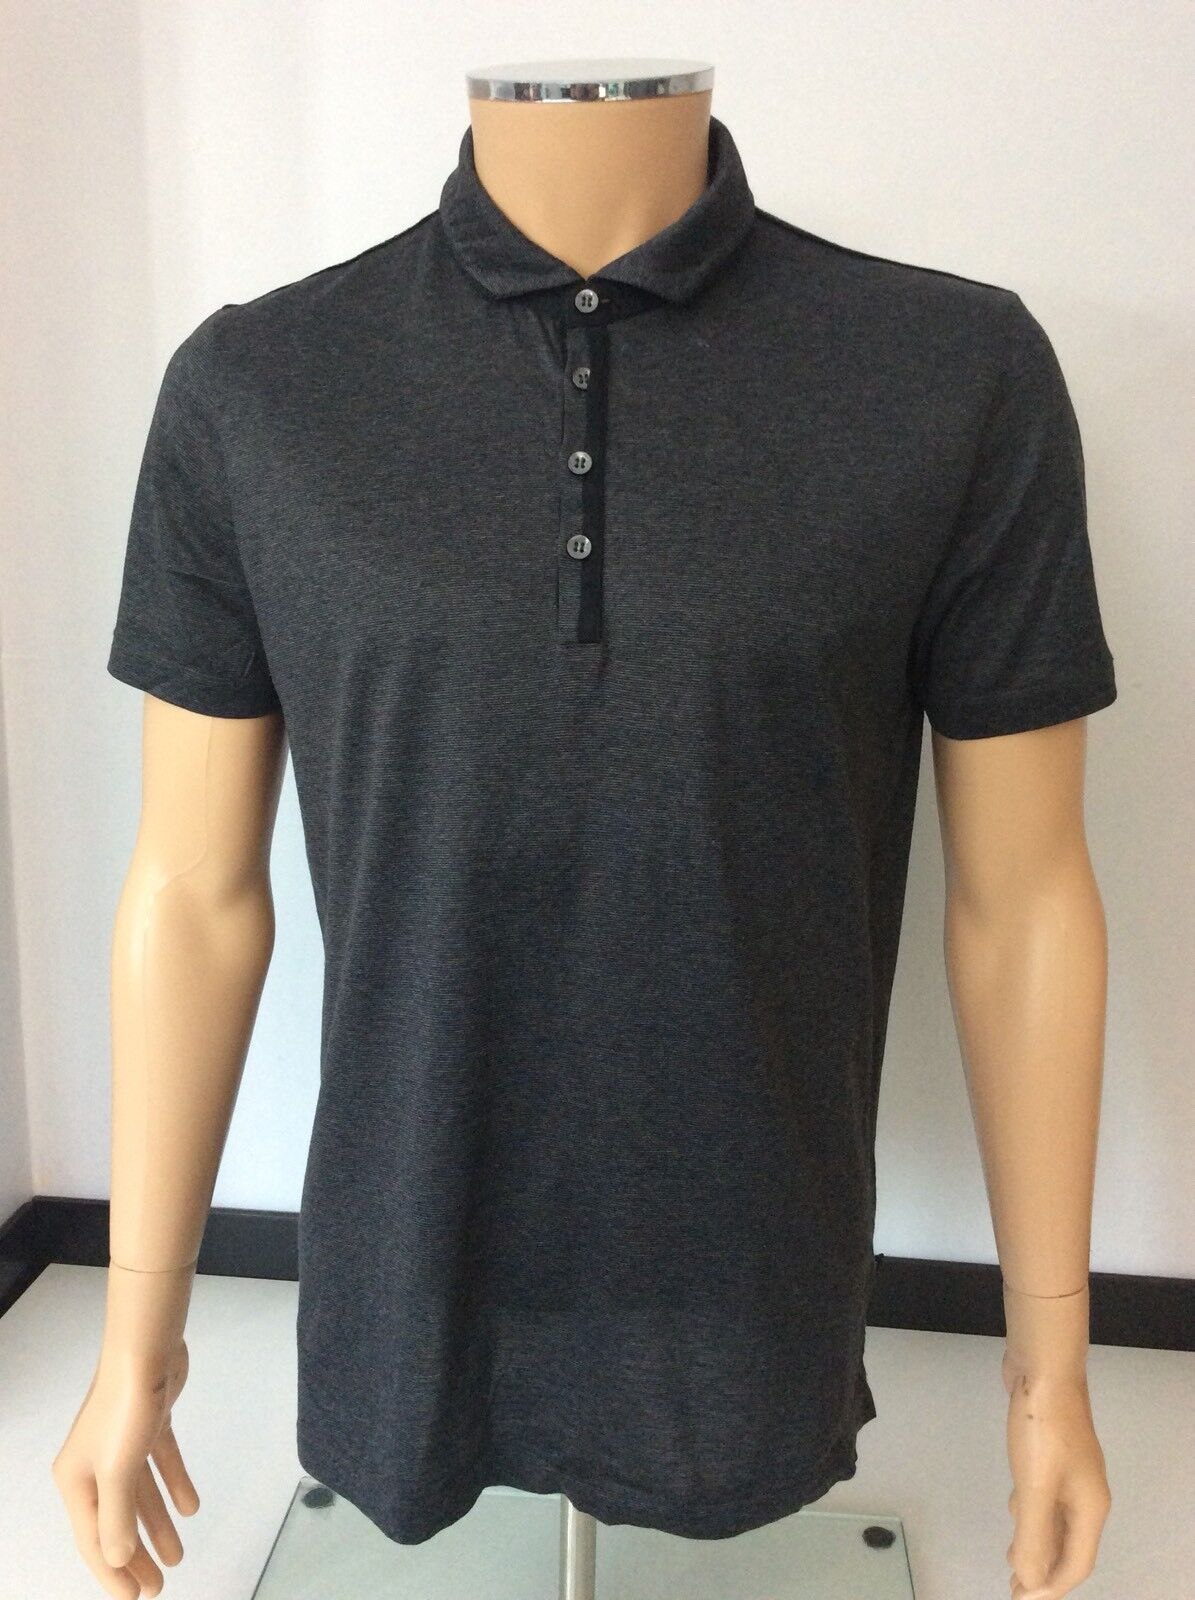 Hugo Boss Rapino 31 Men's Polo T Shirt, Size Large, Grey, VGC